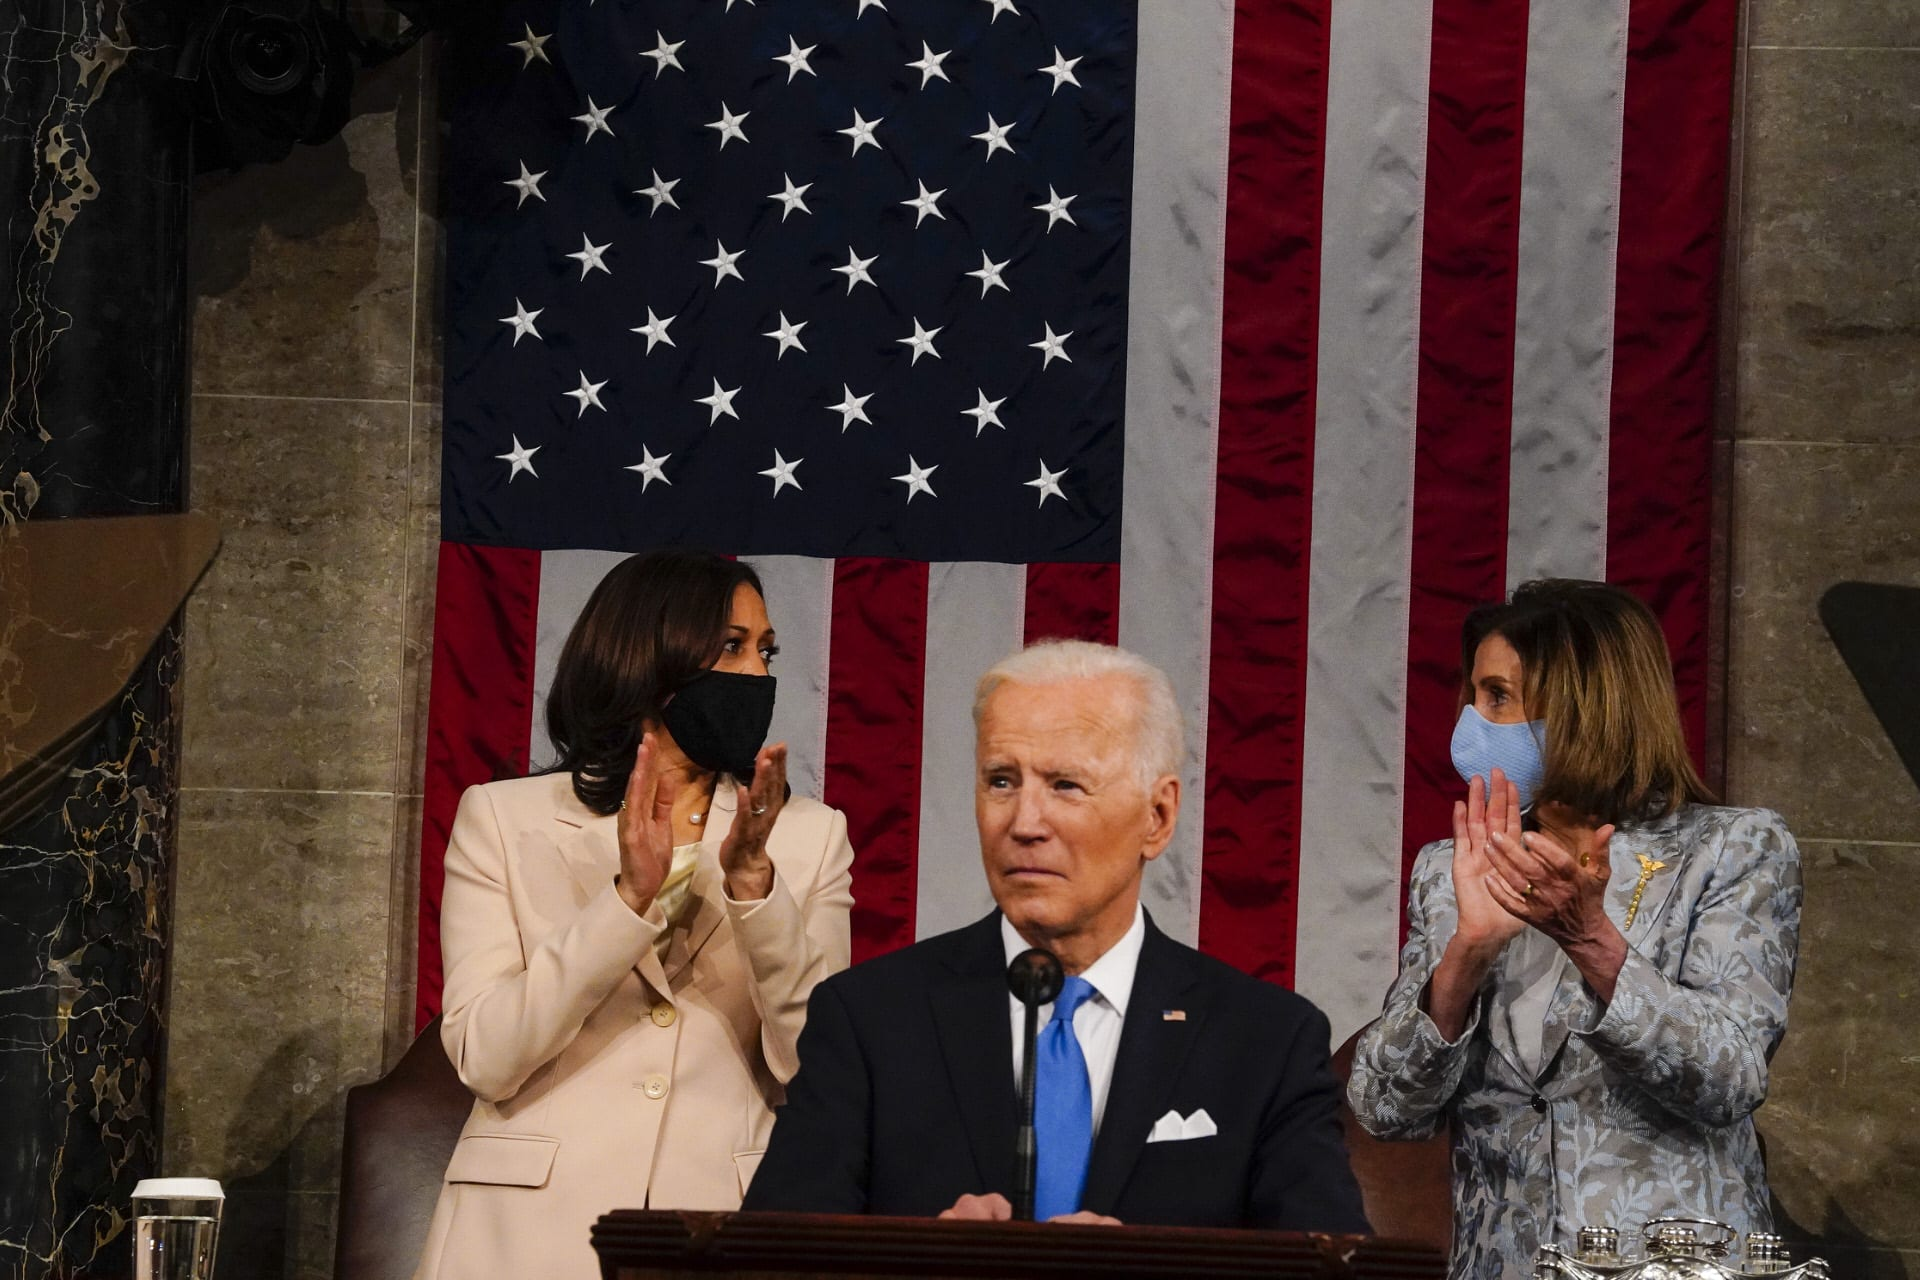 Harris and Pelosi stand behind Biden during speech